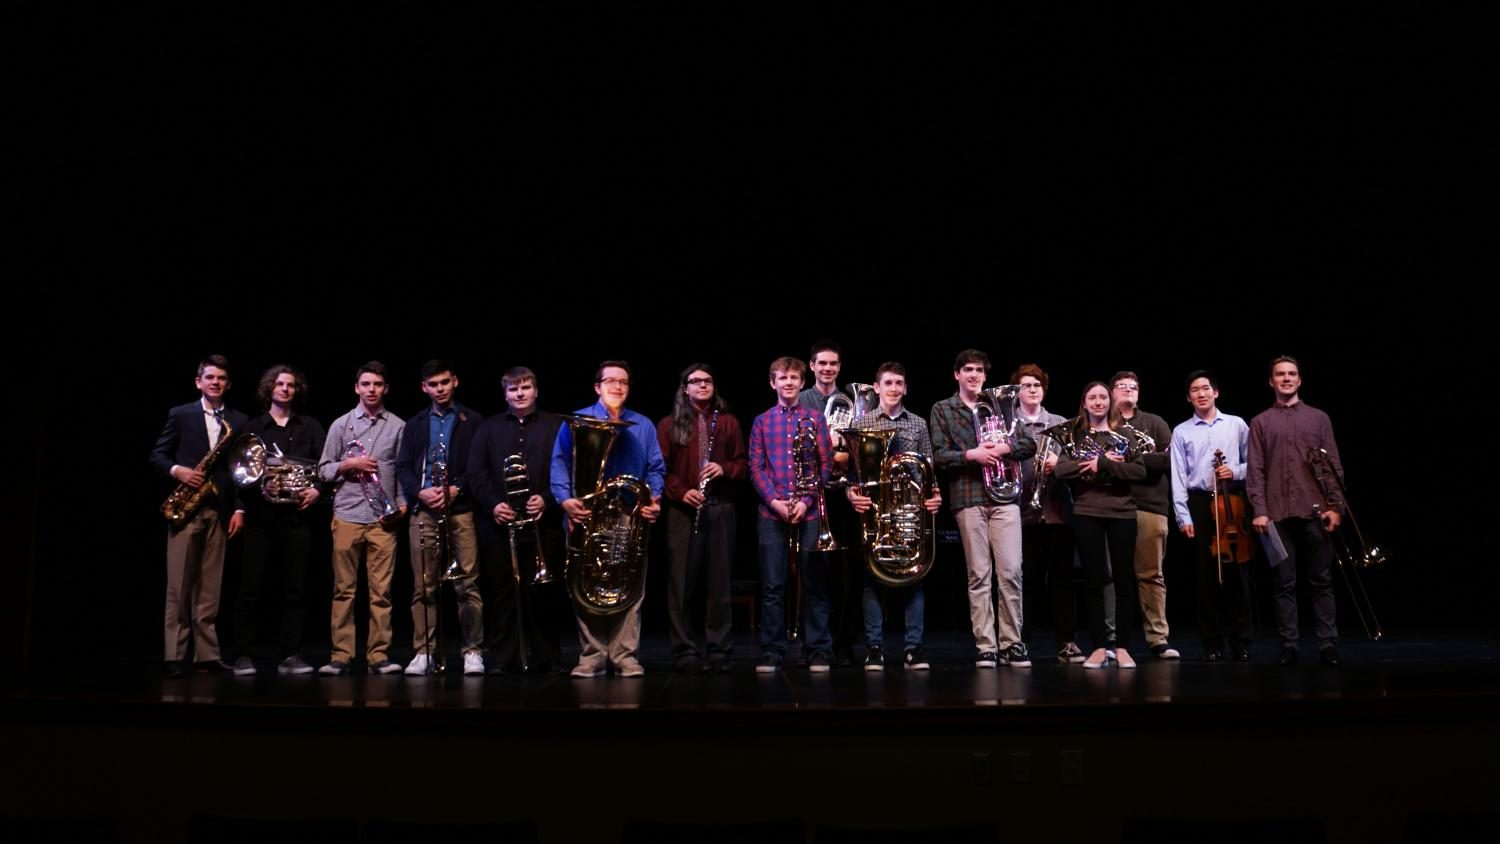 Musician+competing+in+the+solo+and+ensemble+contests+shared+their+pieces+in+the+Performing+Arts+Center+on+April+26.+From+left+to+right%3A+Will+Glausi%2C+junior%3B+Jonathan+Zilk%2C+senior%3B+Ryan+Conrad%2C+senior%3B+Neil+Yotsuya%2C+senior%3B+Jesse+Anderson%2C+sophomore%3B+Eli+Dodd%2C+sophomore%3B+Joaquin+Socolofsky%2C+senior%3B+Henry+Baumgardner%2C+senior%3B+Sheridan+Hardy%2C+junior%3B+Carson+Bradford%2C+sophomore%3B+Rhys+Brunetto%2C+sophomore%3B+Jake+Nielson%2C+senior%3B+Lauren+Griffith%2C+senior%3B+Noah+Gardner%2C+senior%3B+Eaton+Lin%2C+senior%3B+Max+Becker%2C+junior.